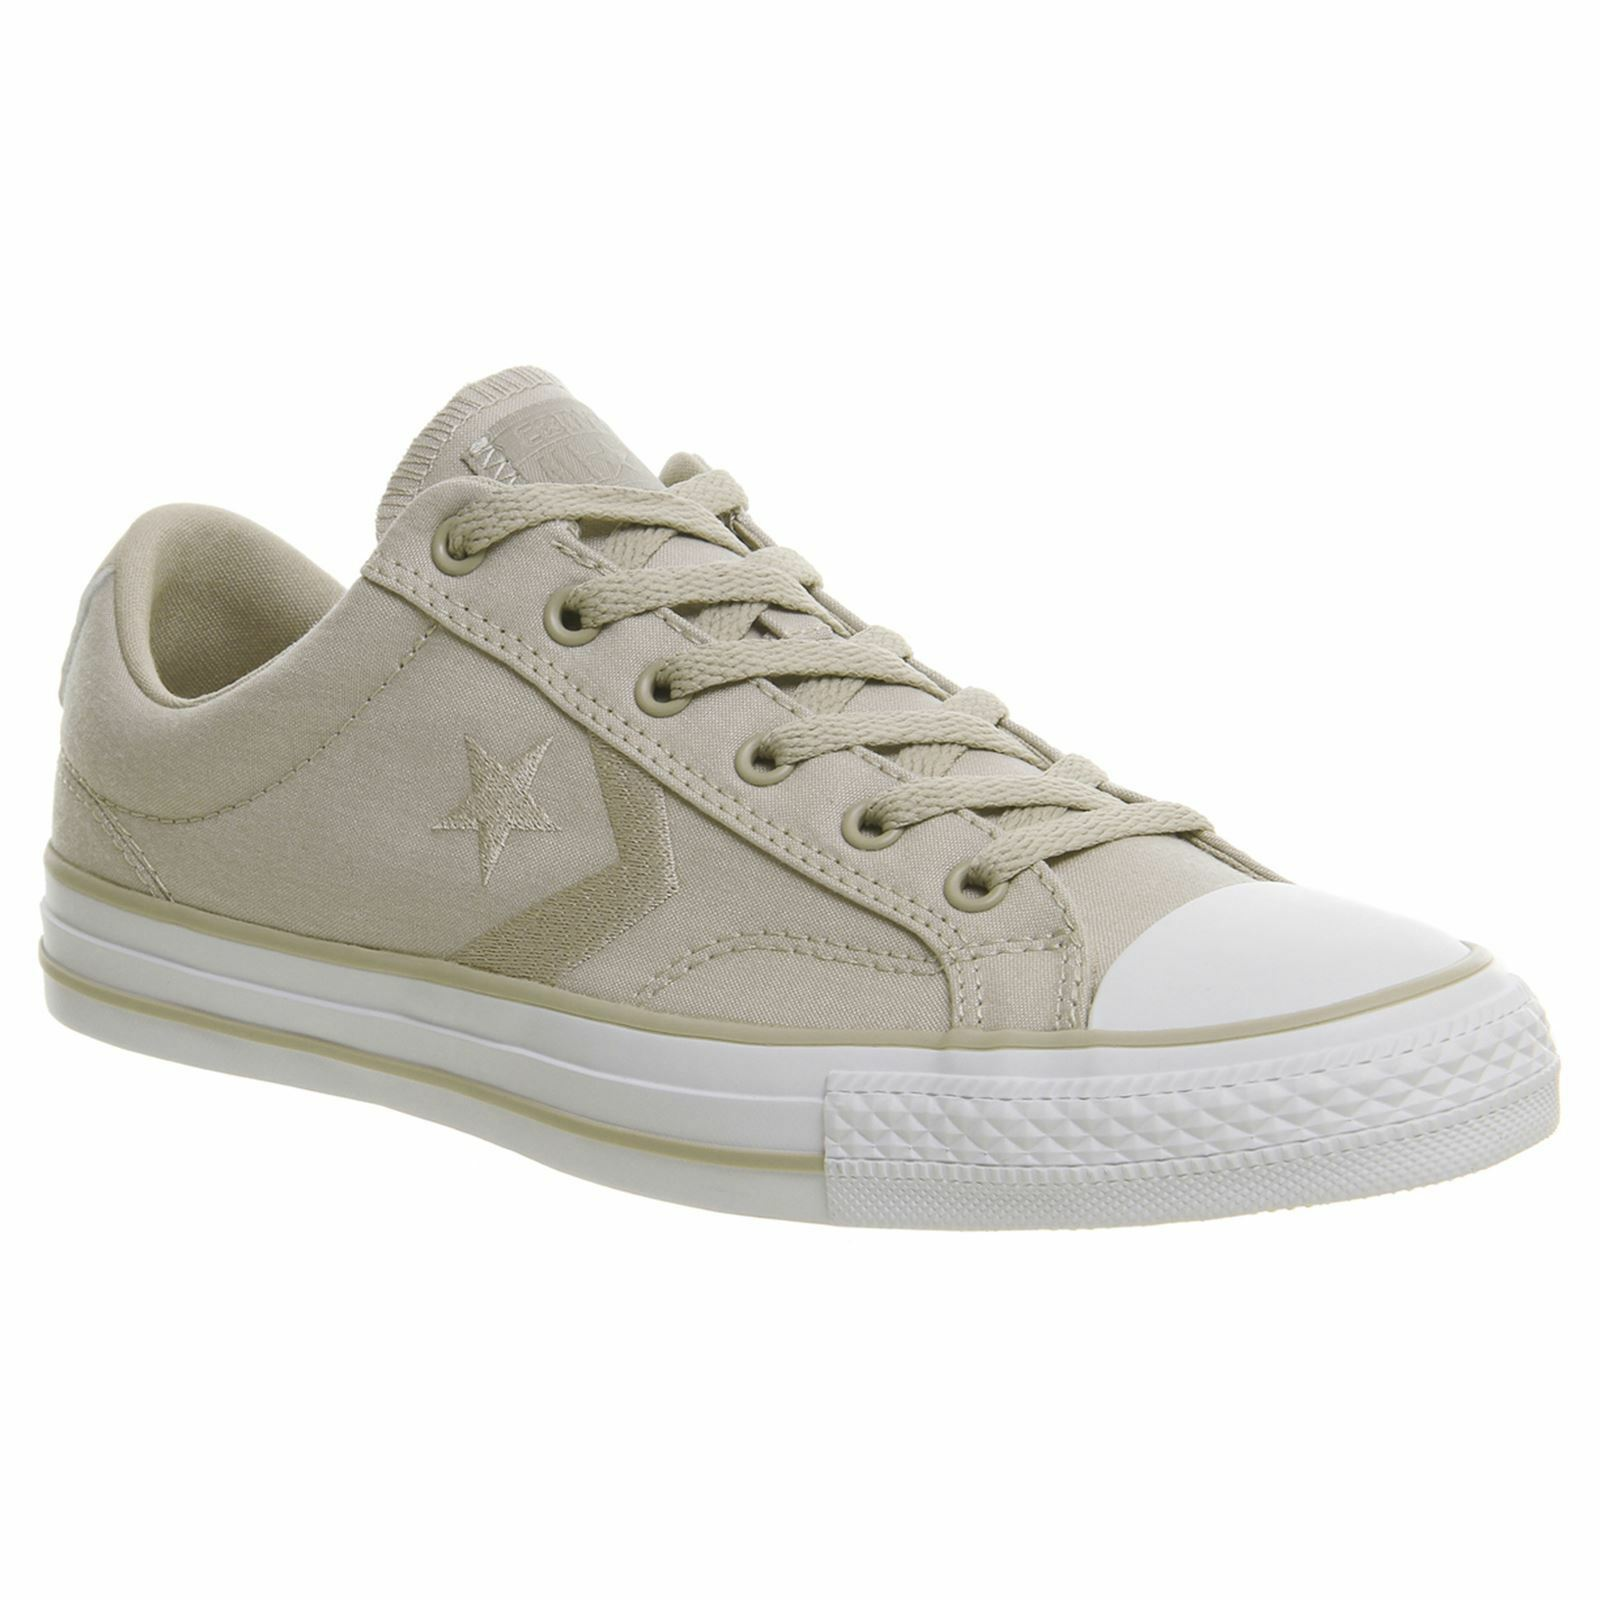 Converse Star Player Ox Zapatos Papyrus Blanco Hombre Trainers Zapatos Ox Unisex New 196f39